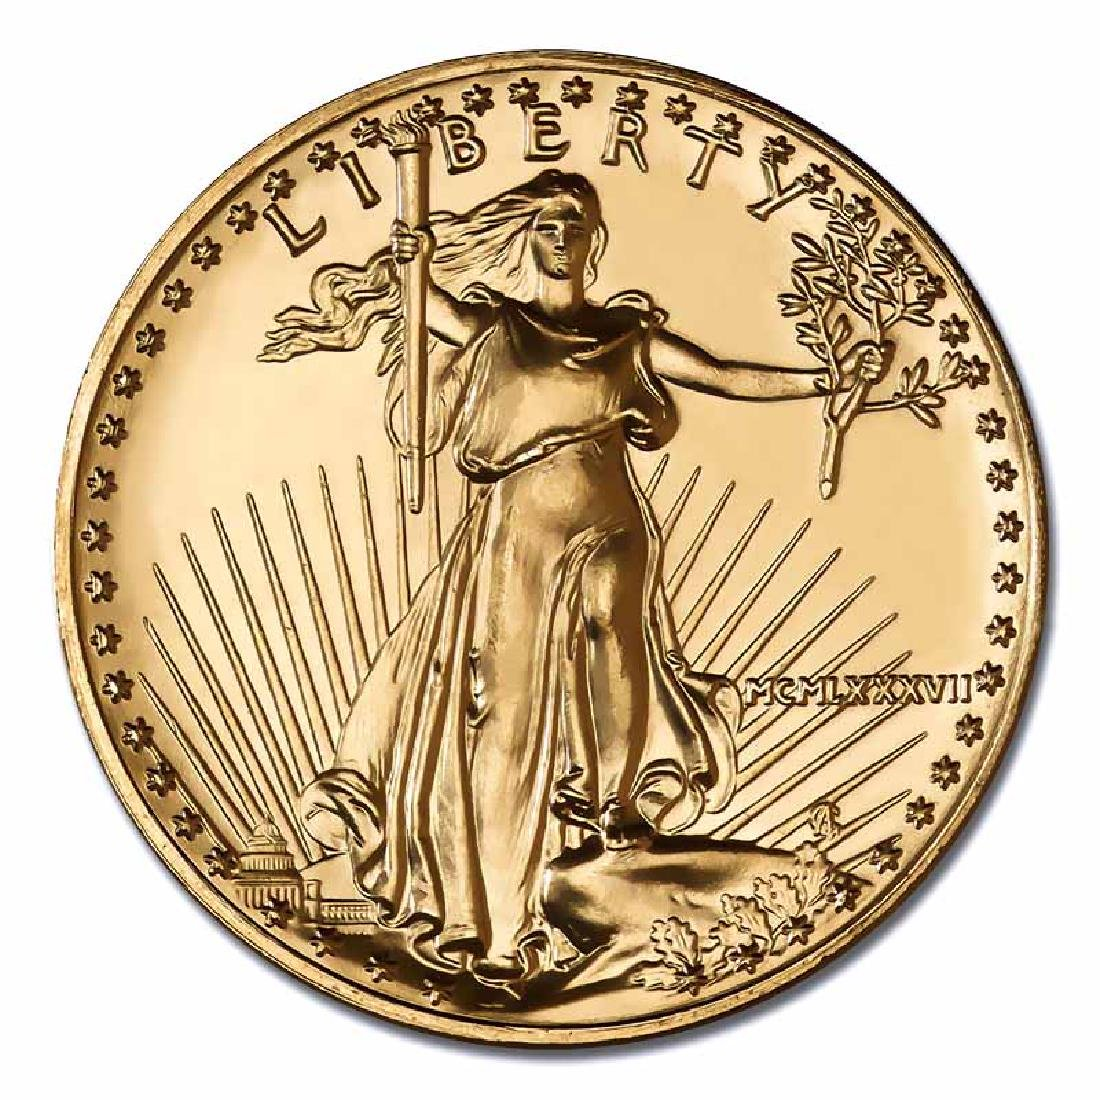 1987 American Gold Eagle 1 oz Uncirculated